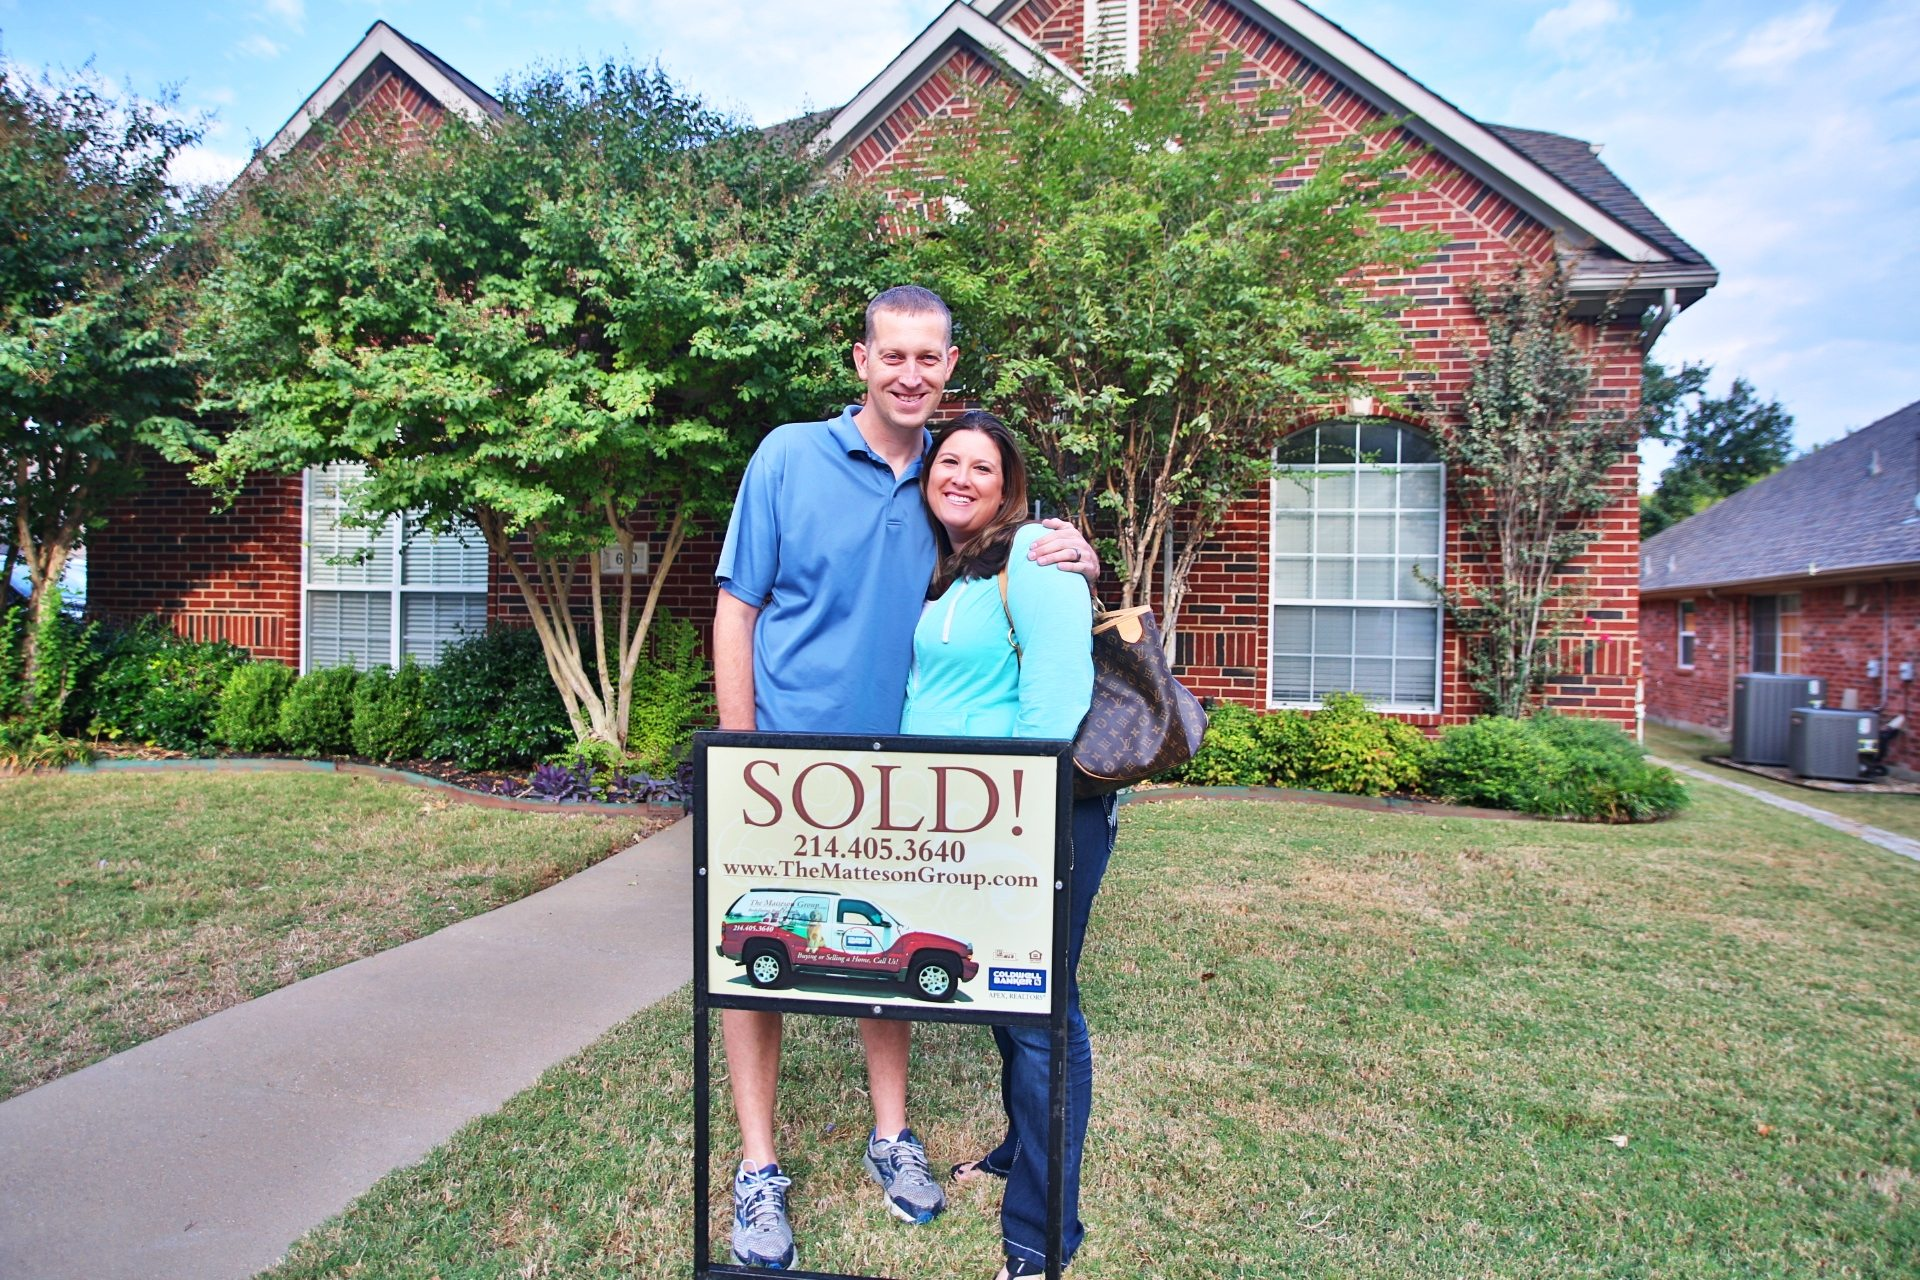 620 Harbor Cove - Shaw, Bryan and Stephanie - SOLD!